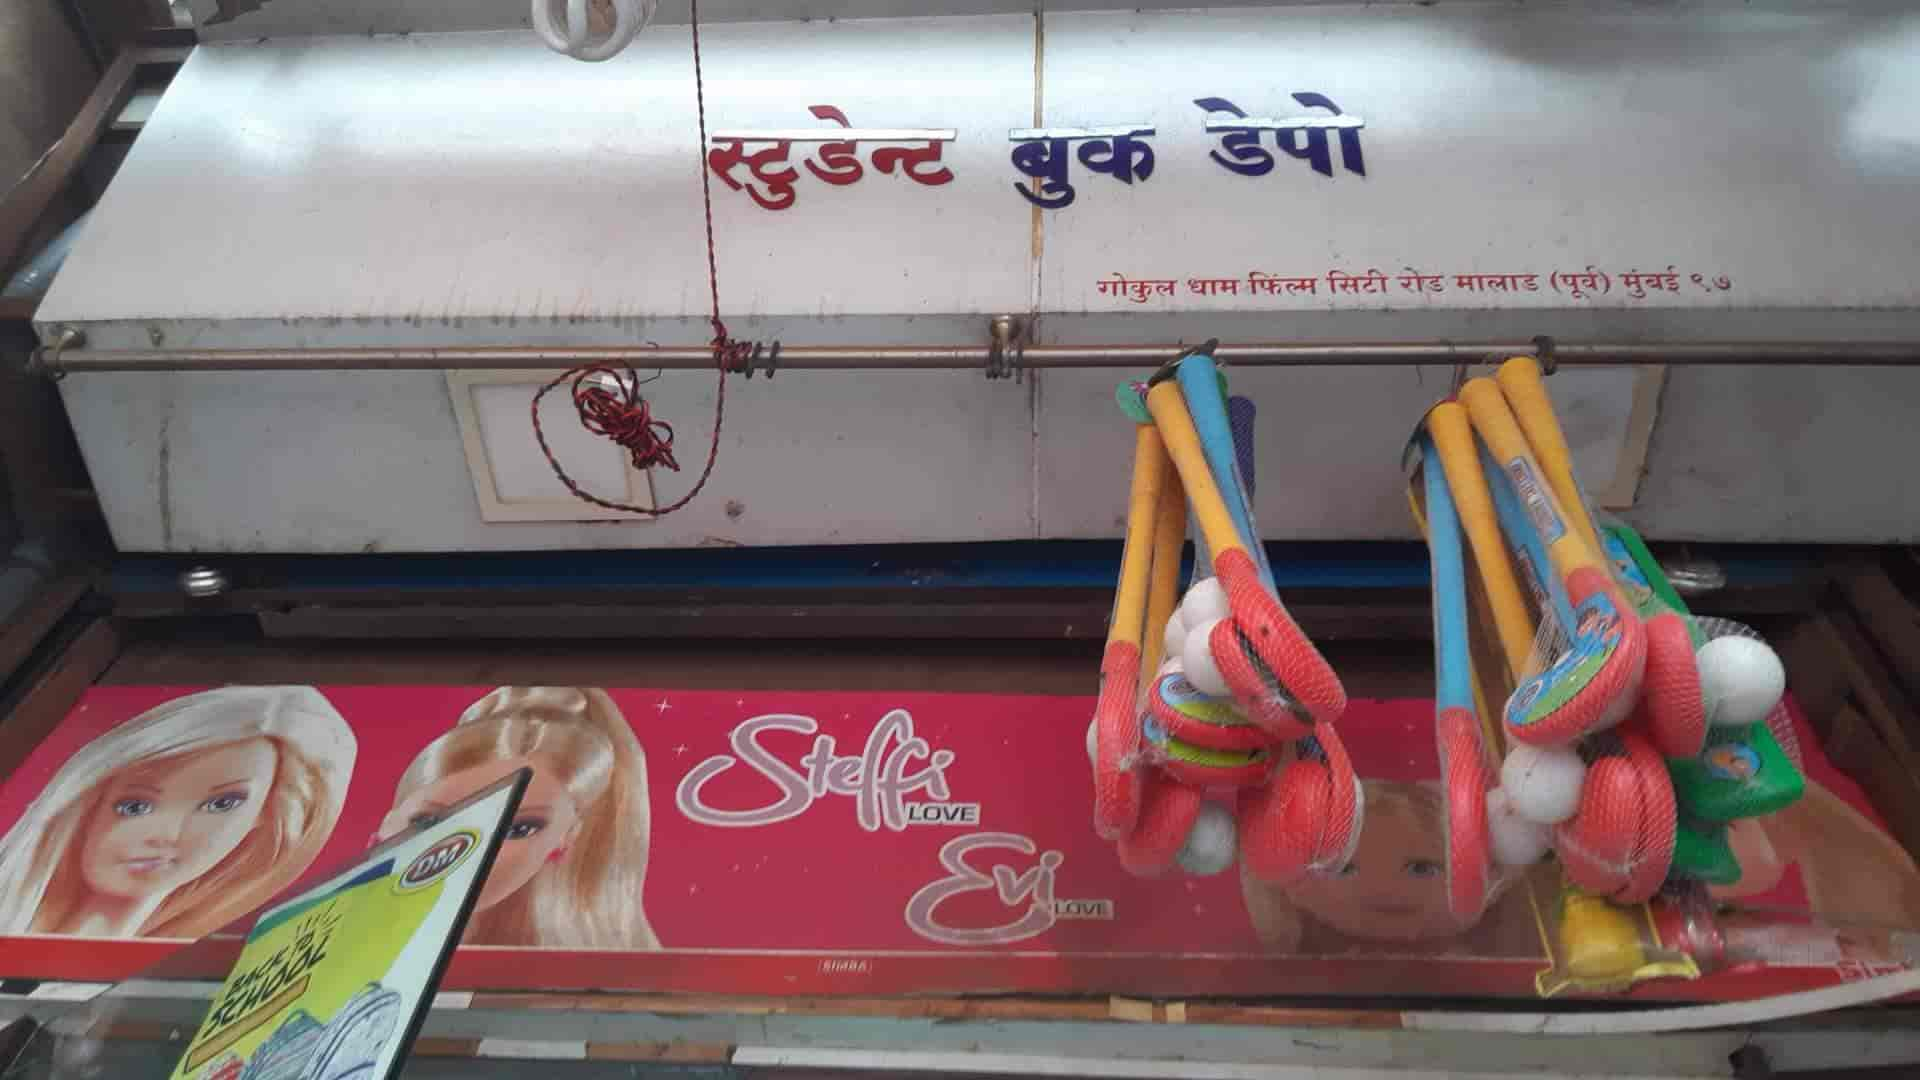 Student Book Depot, Malad East - Stationery Shops in Mumbai